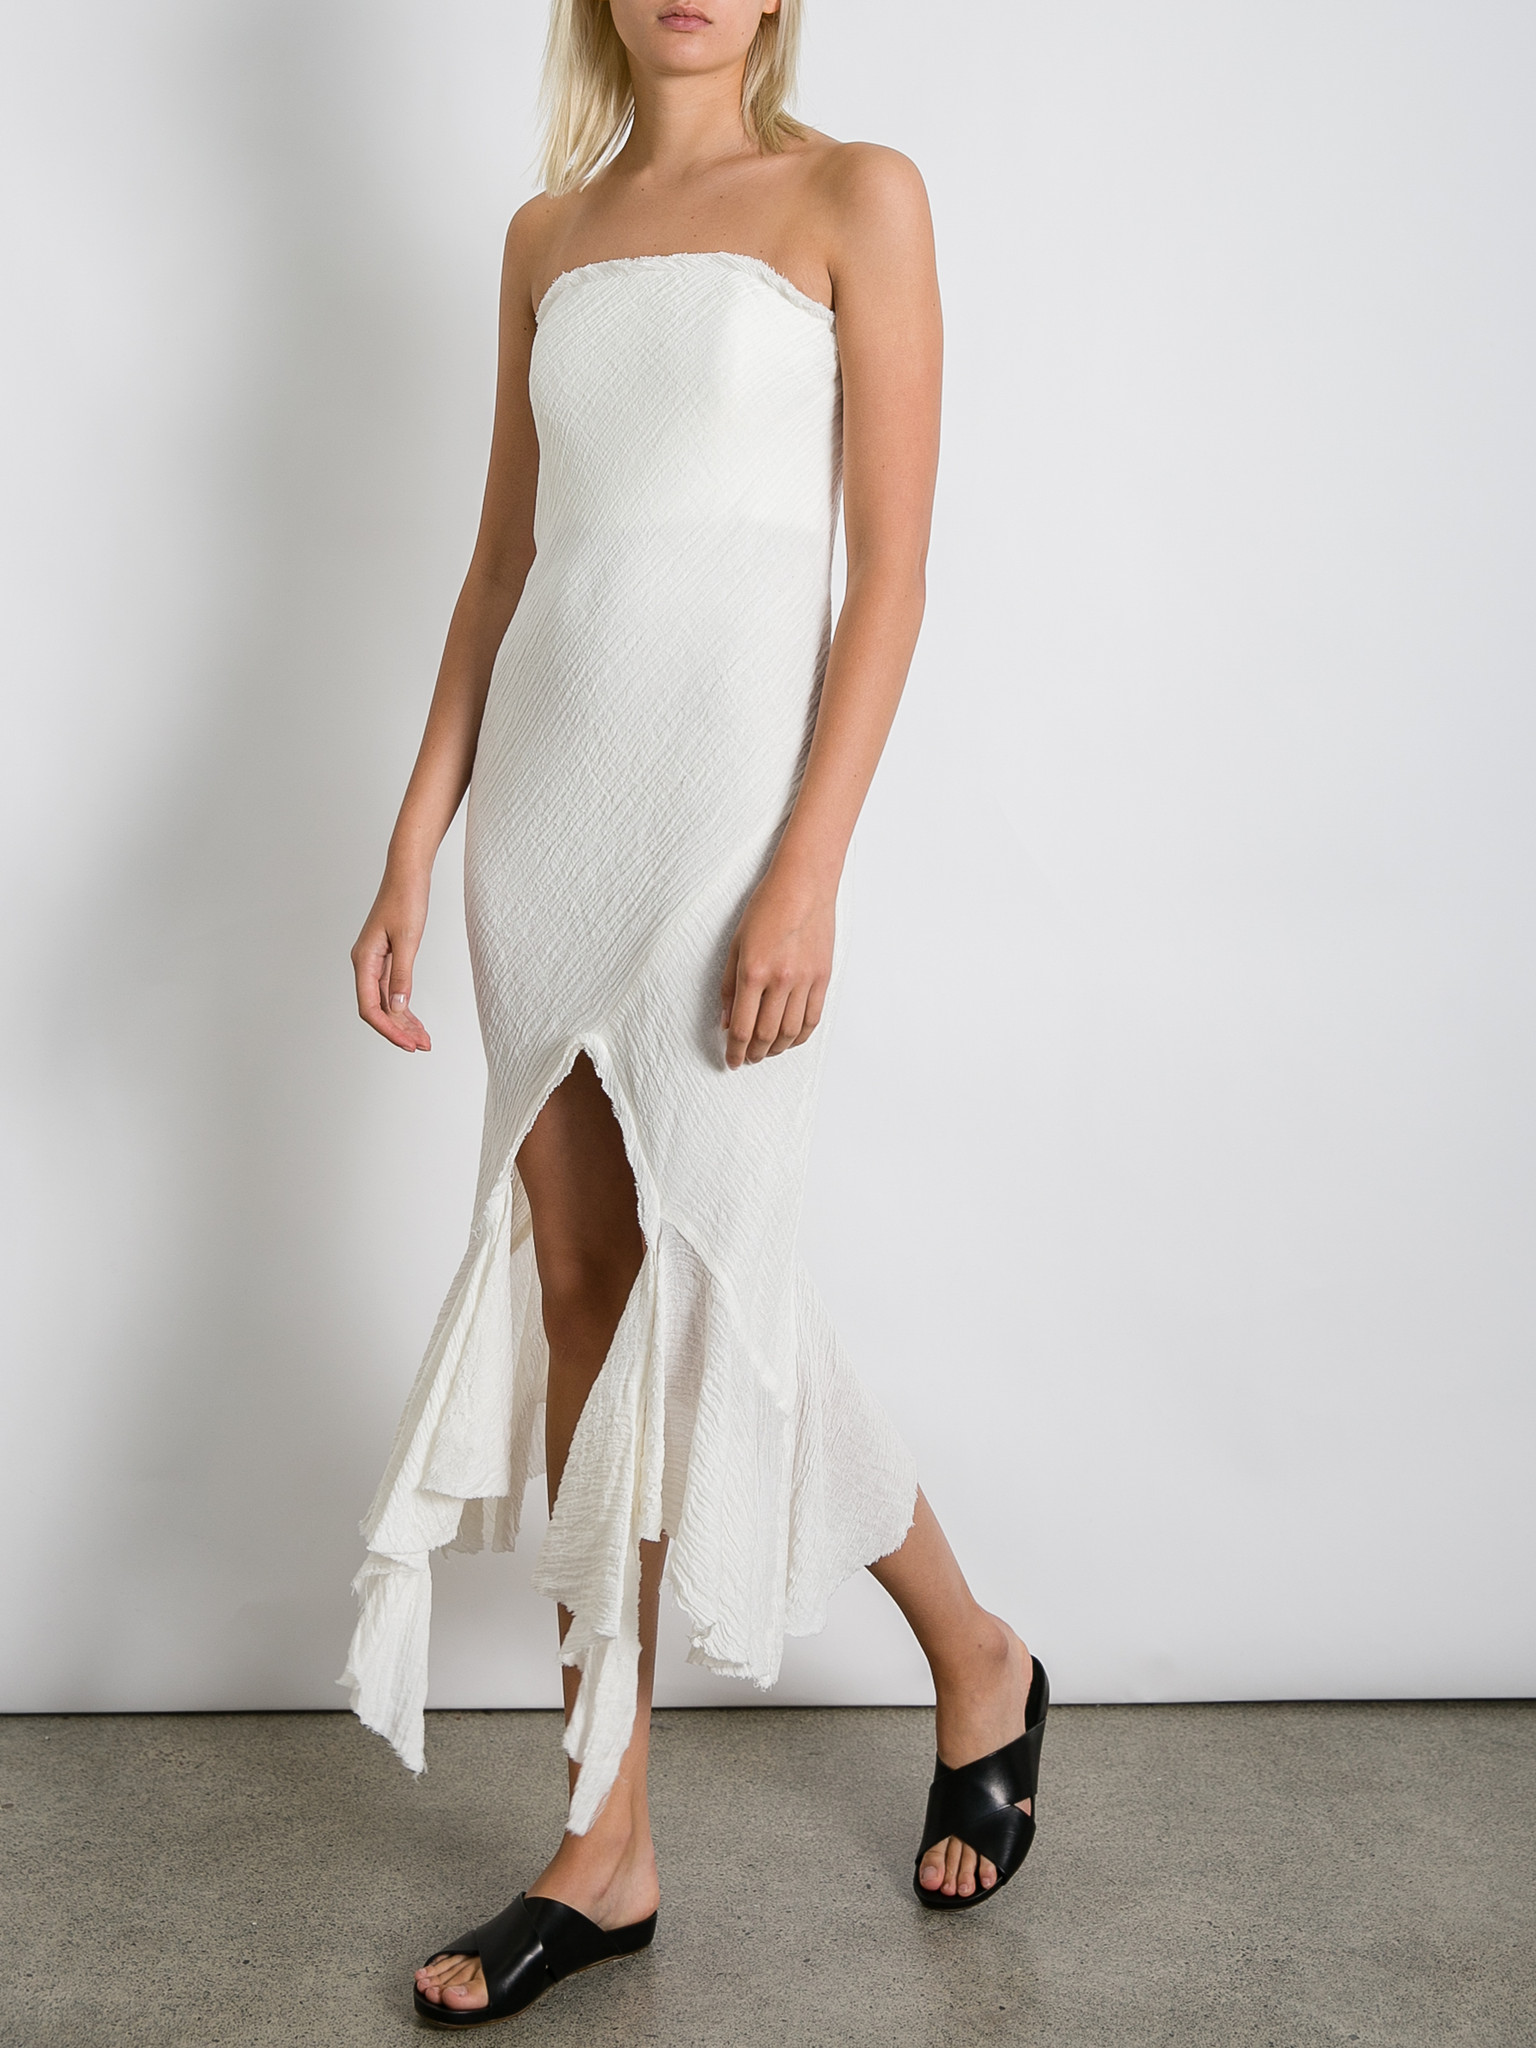 THE_UNDONE_KITX_Crush_Linen_Strapless_Dress_White_FF.jpg